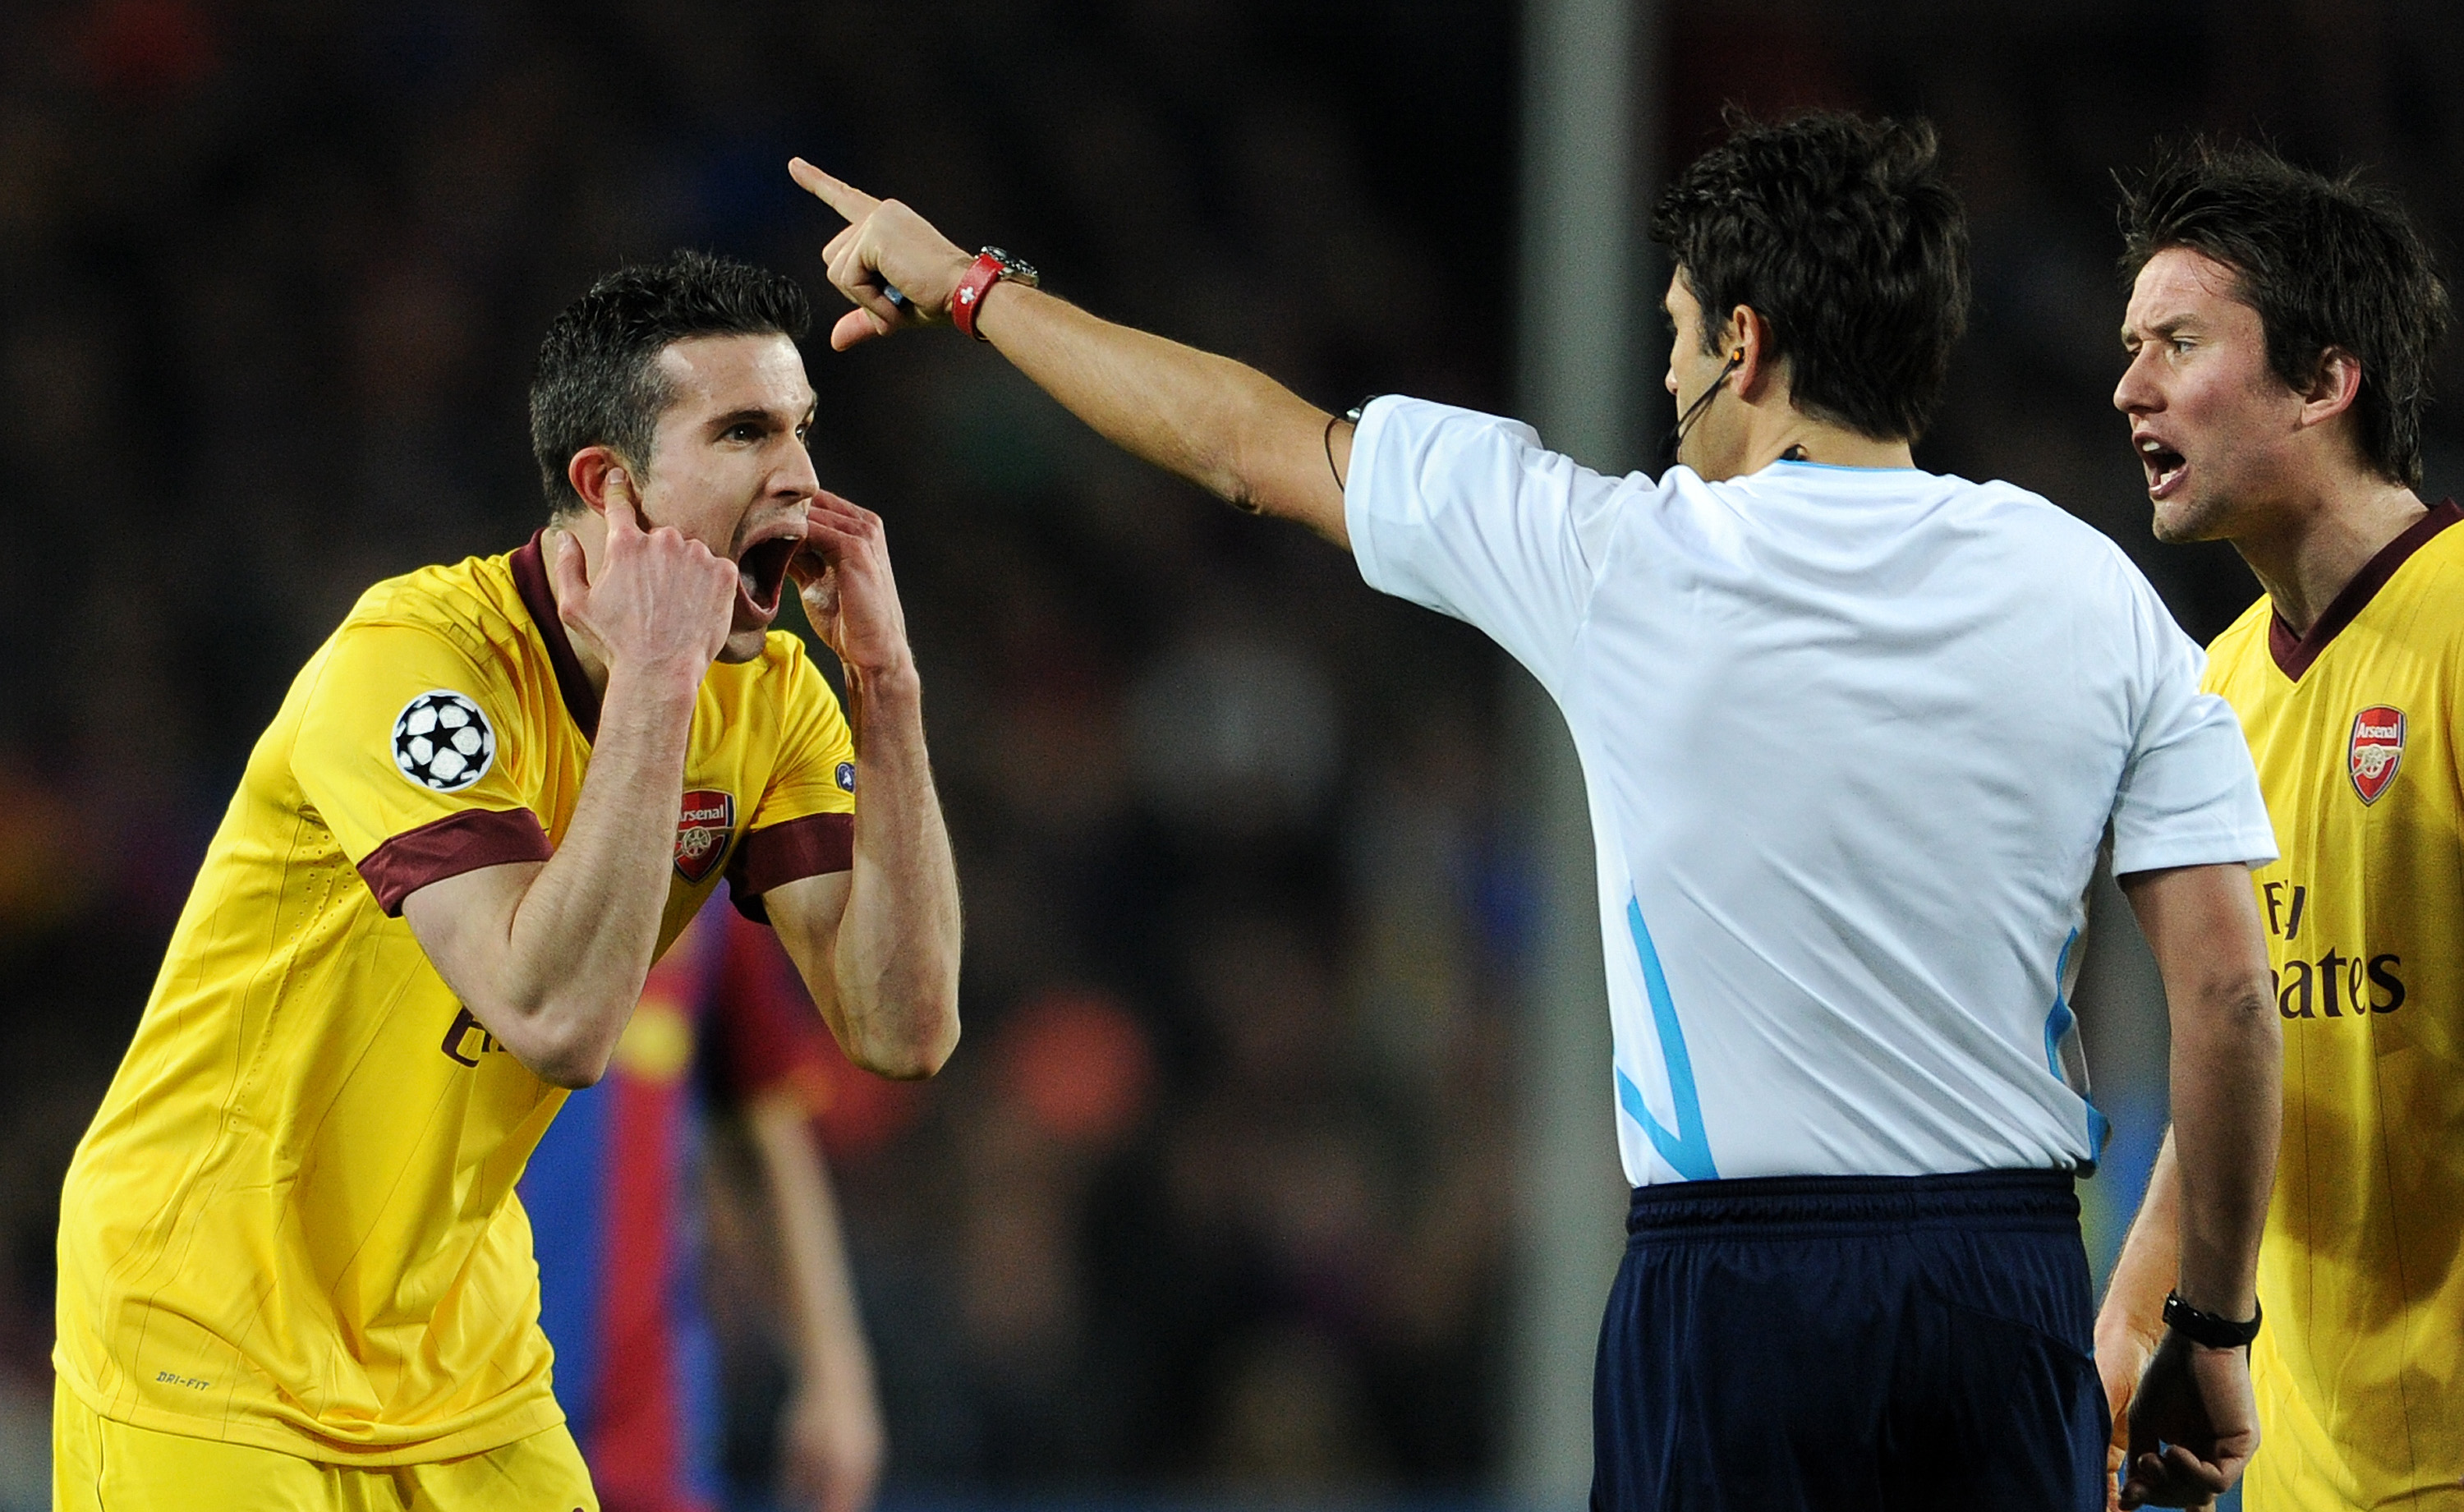 BARCELONA, SPAIN - MARCH 08:  Robin van Persie (L) of Arsenal reacts to referee Massimo Busacca after receiving a red card during the UEFA Champions League round of 16 second leg match between Barcelona and Arsenal on March 8, 2011 in Barcelona, Spain.  (